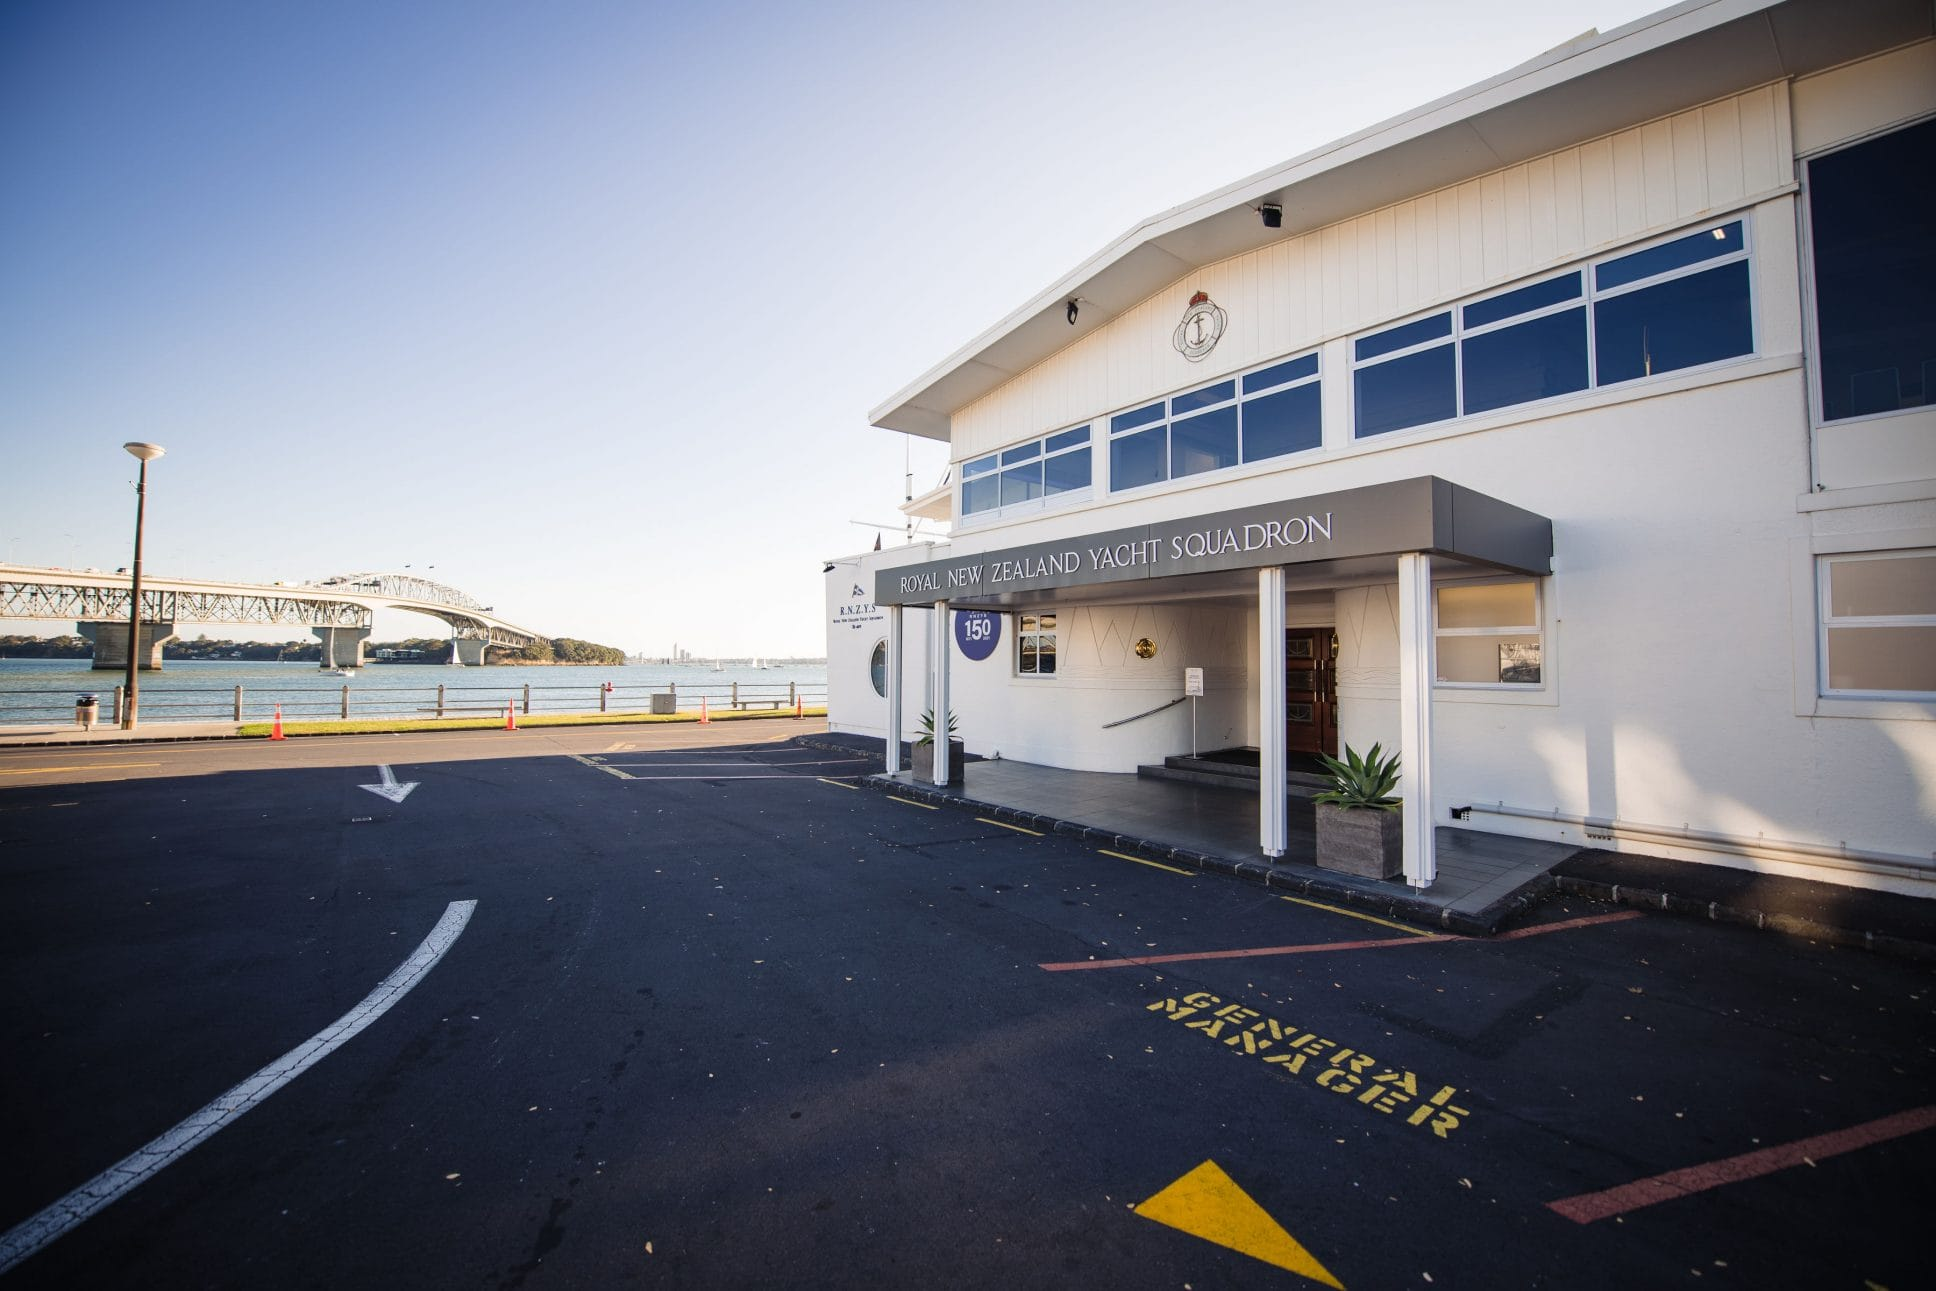 The Royal New Zealand Yacht Squadron events venue.